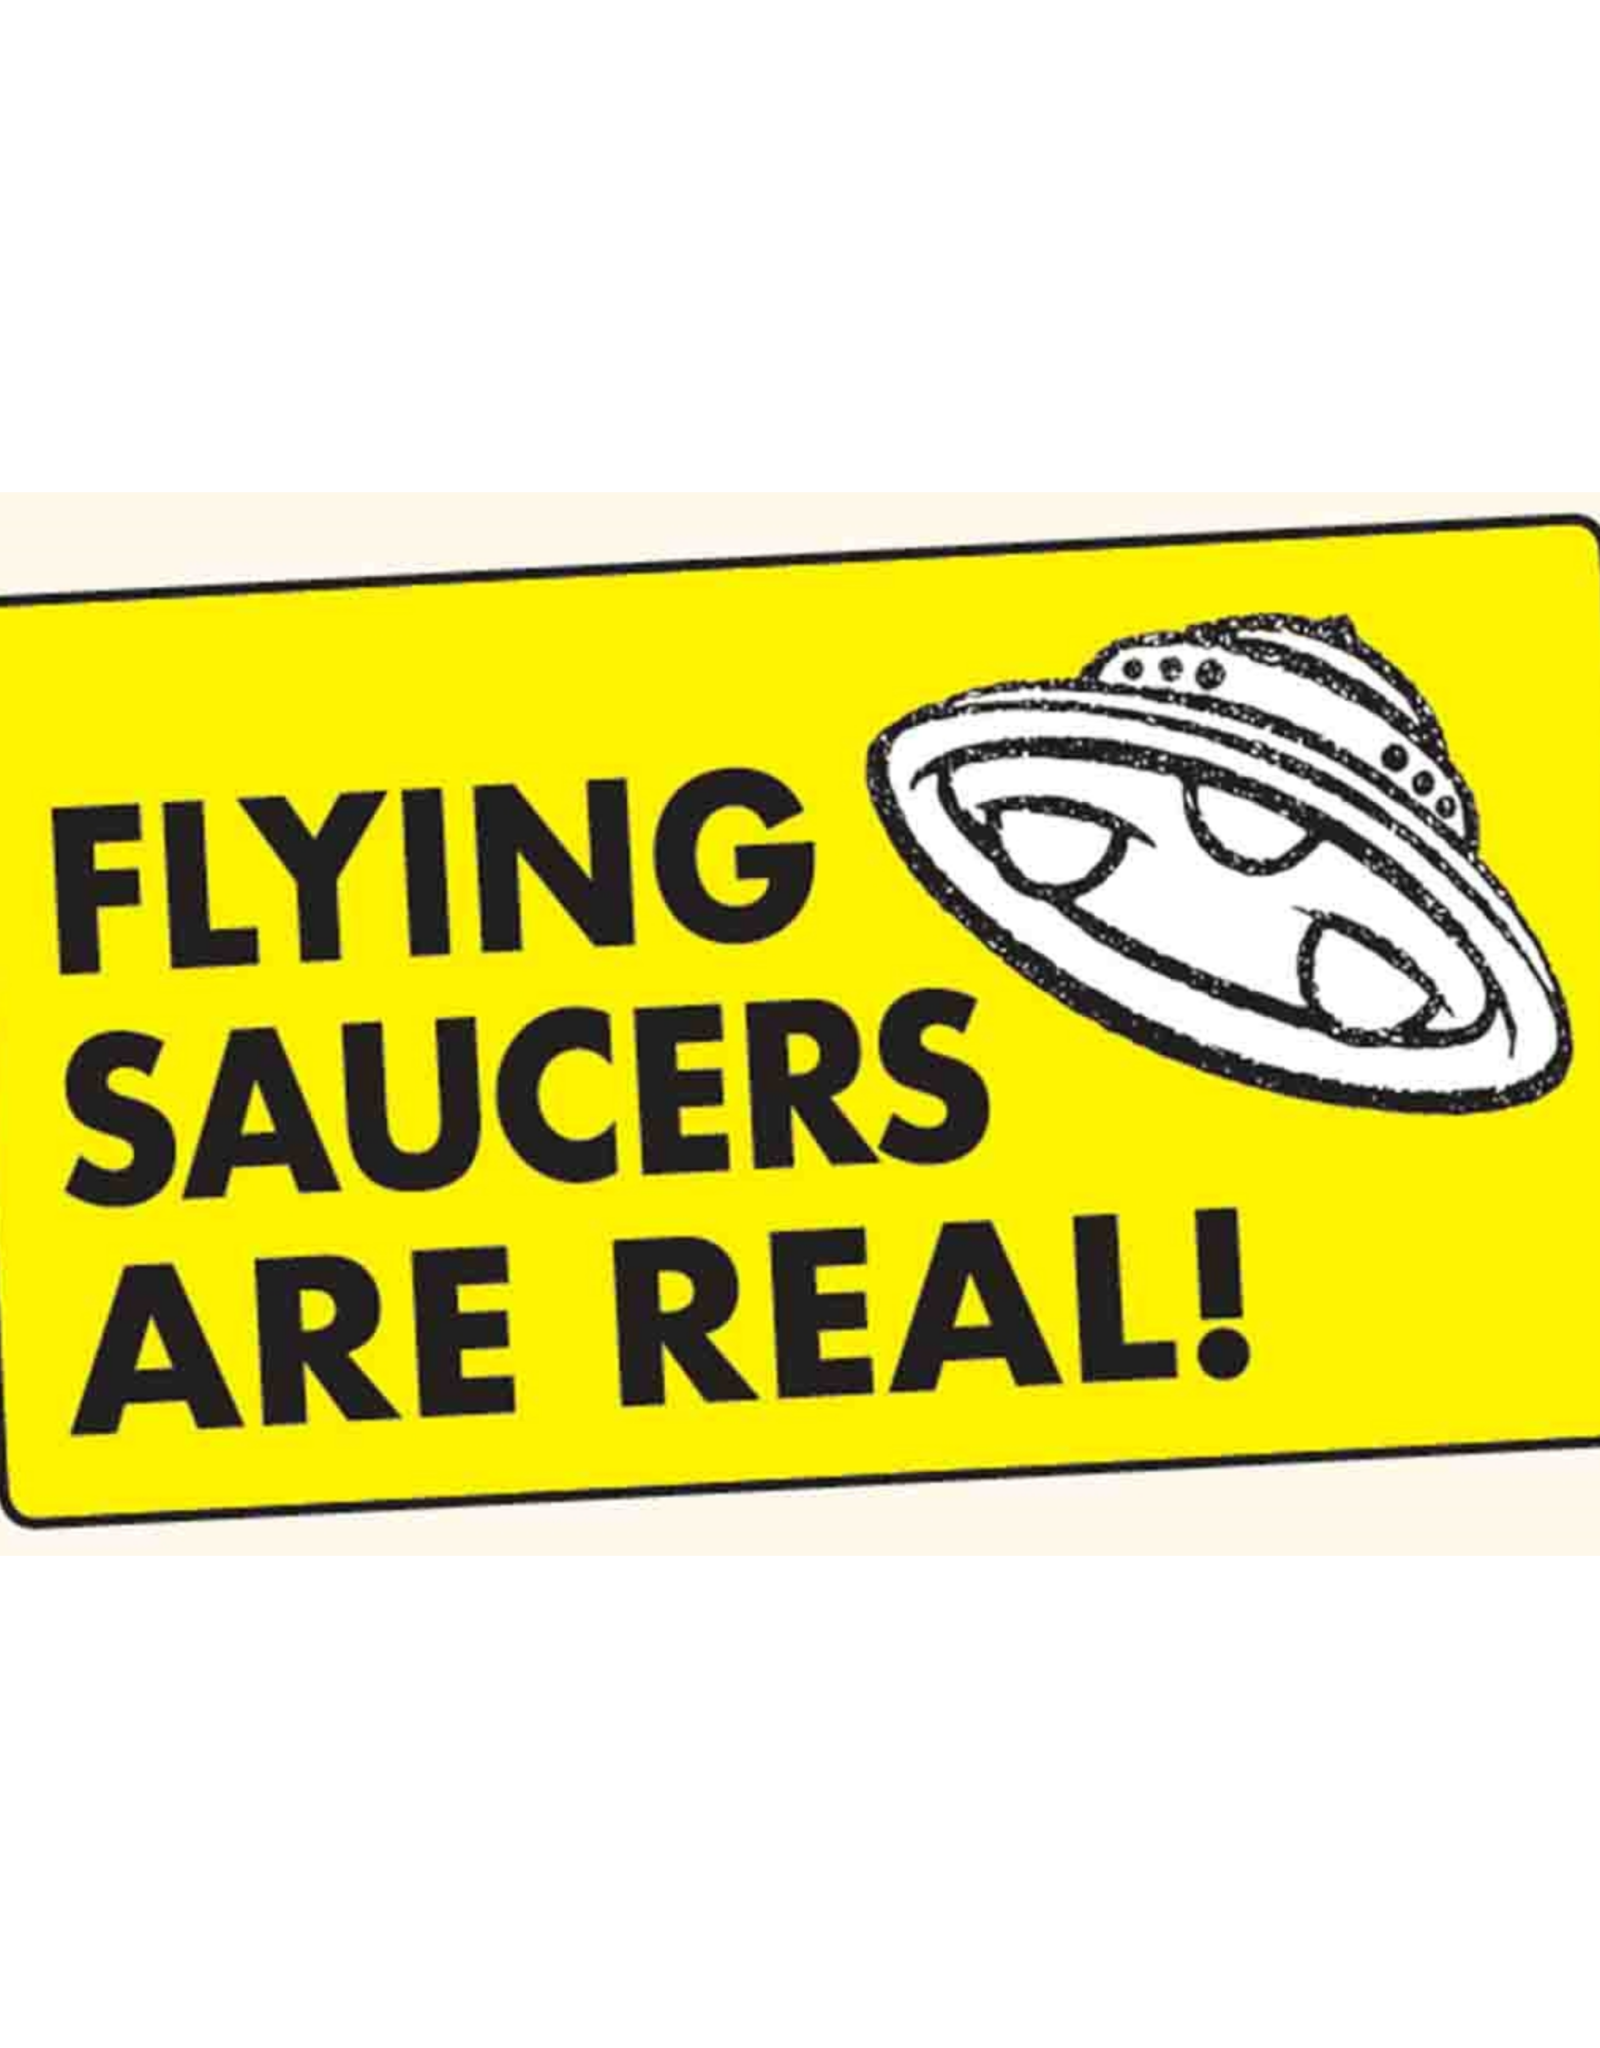 Flying Saucers Are Real Bumper Sticker